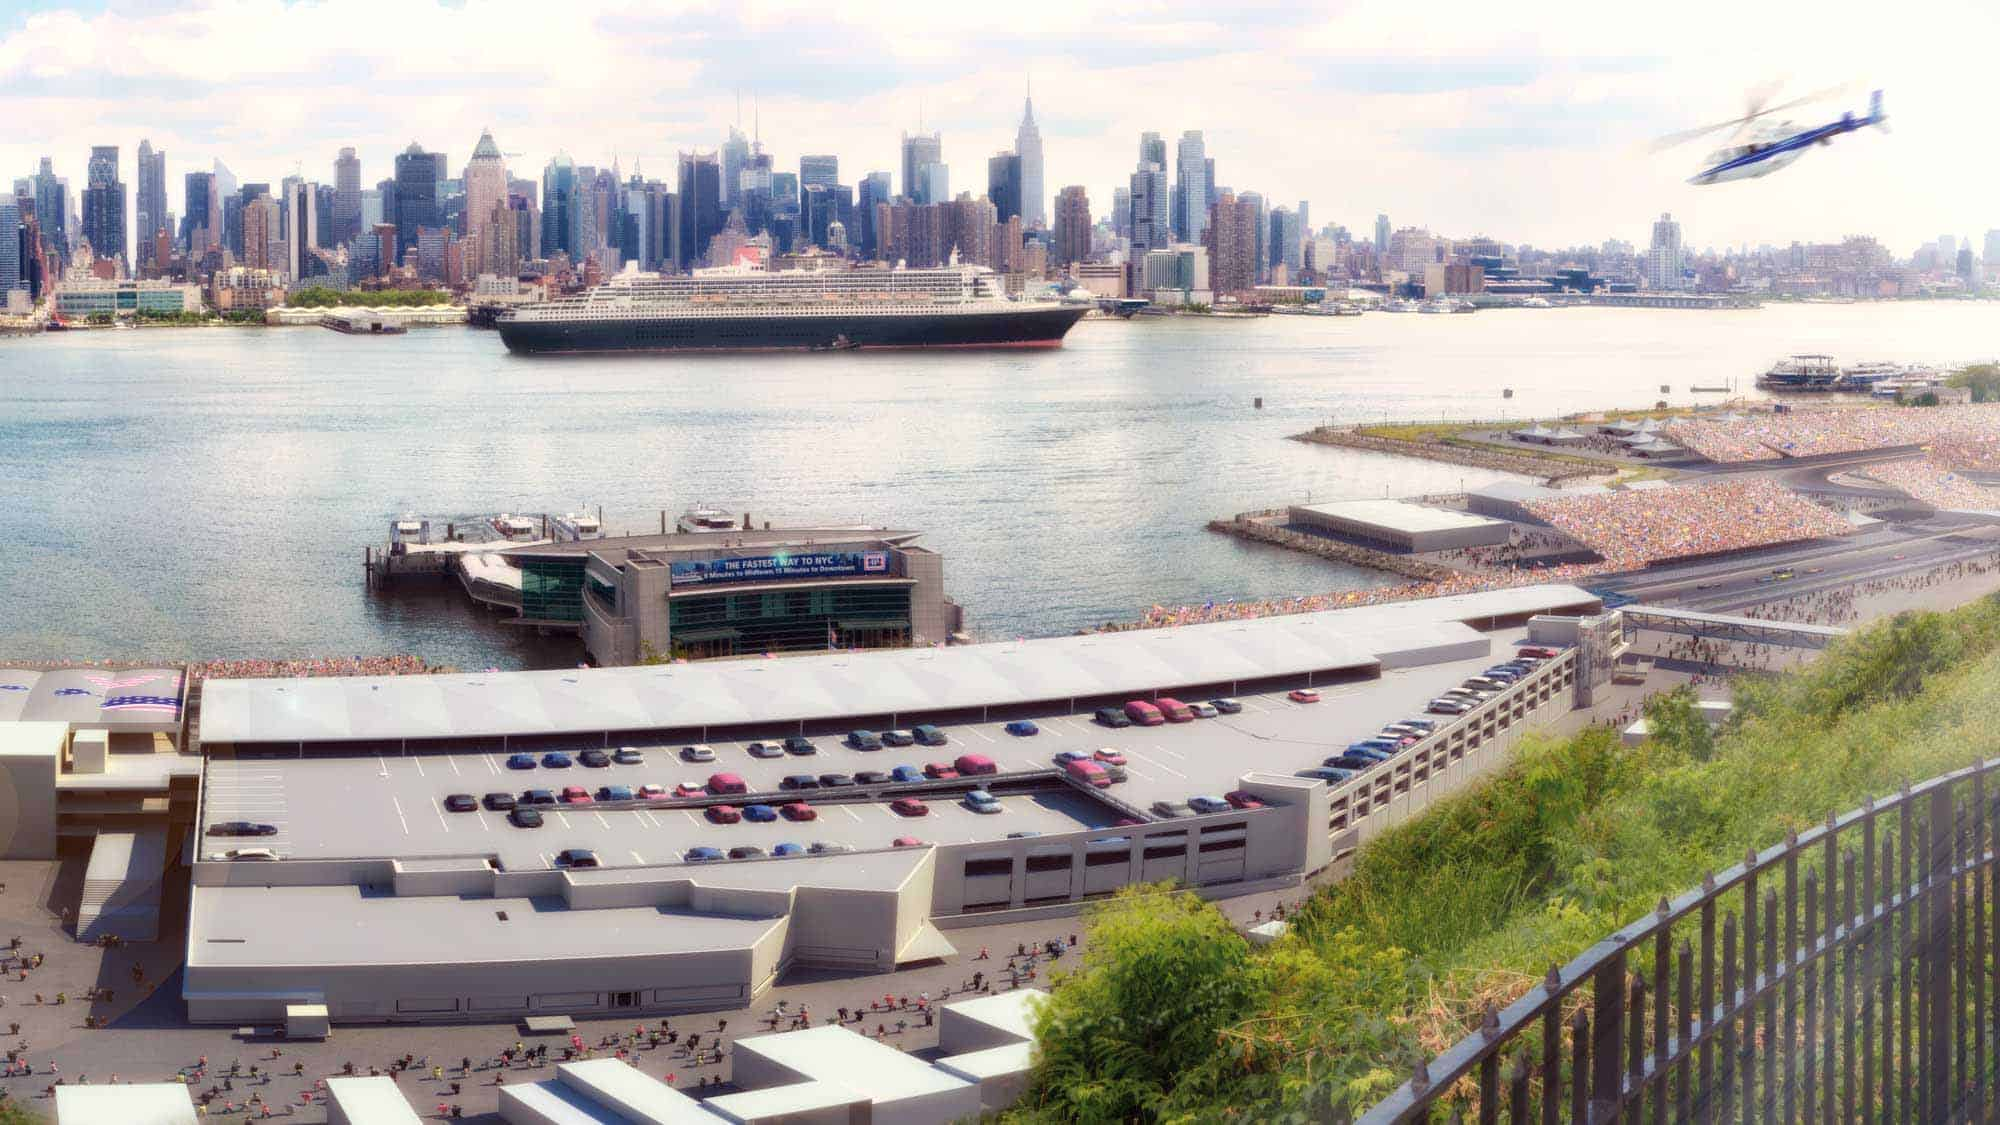 New York F1 Track 169 01 Kopie - PROJECTS